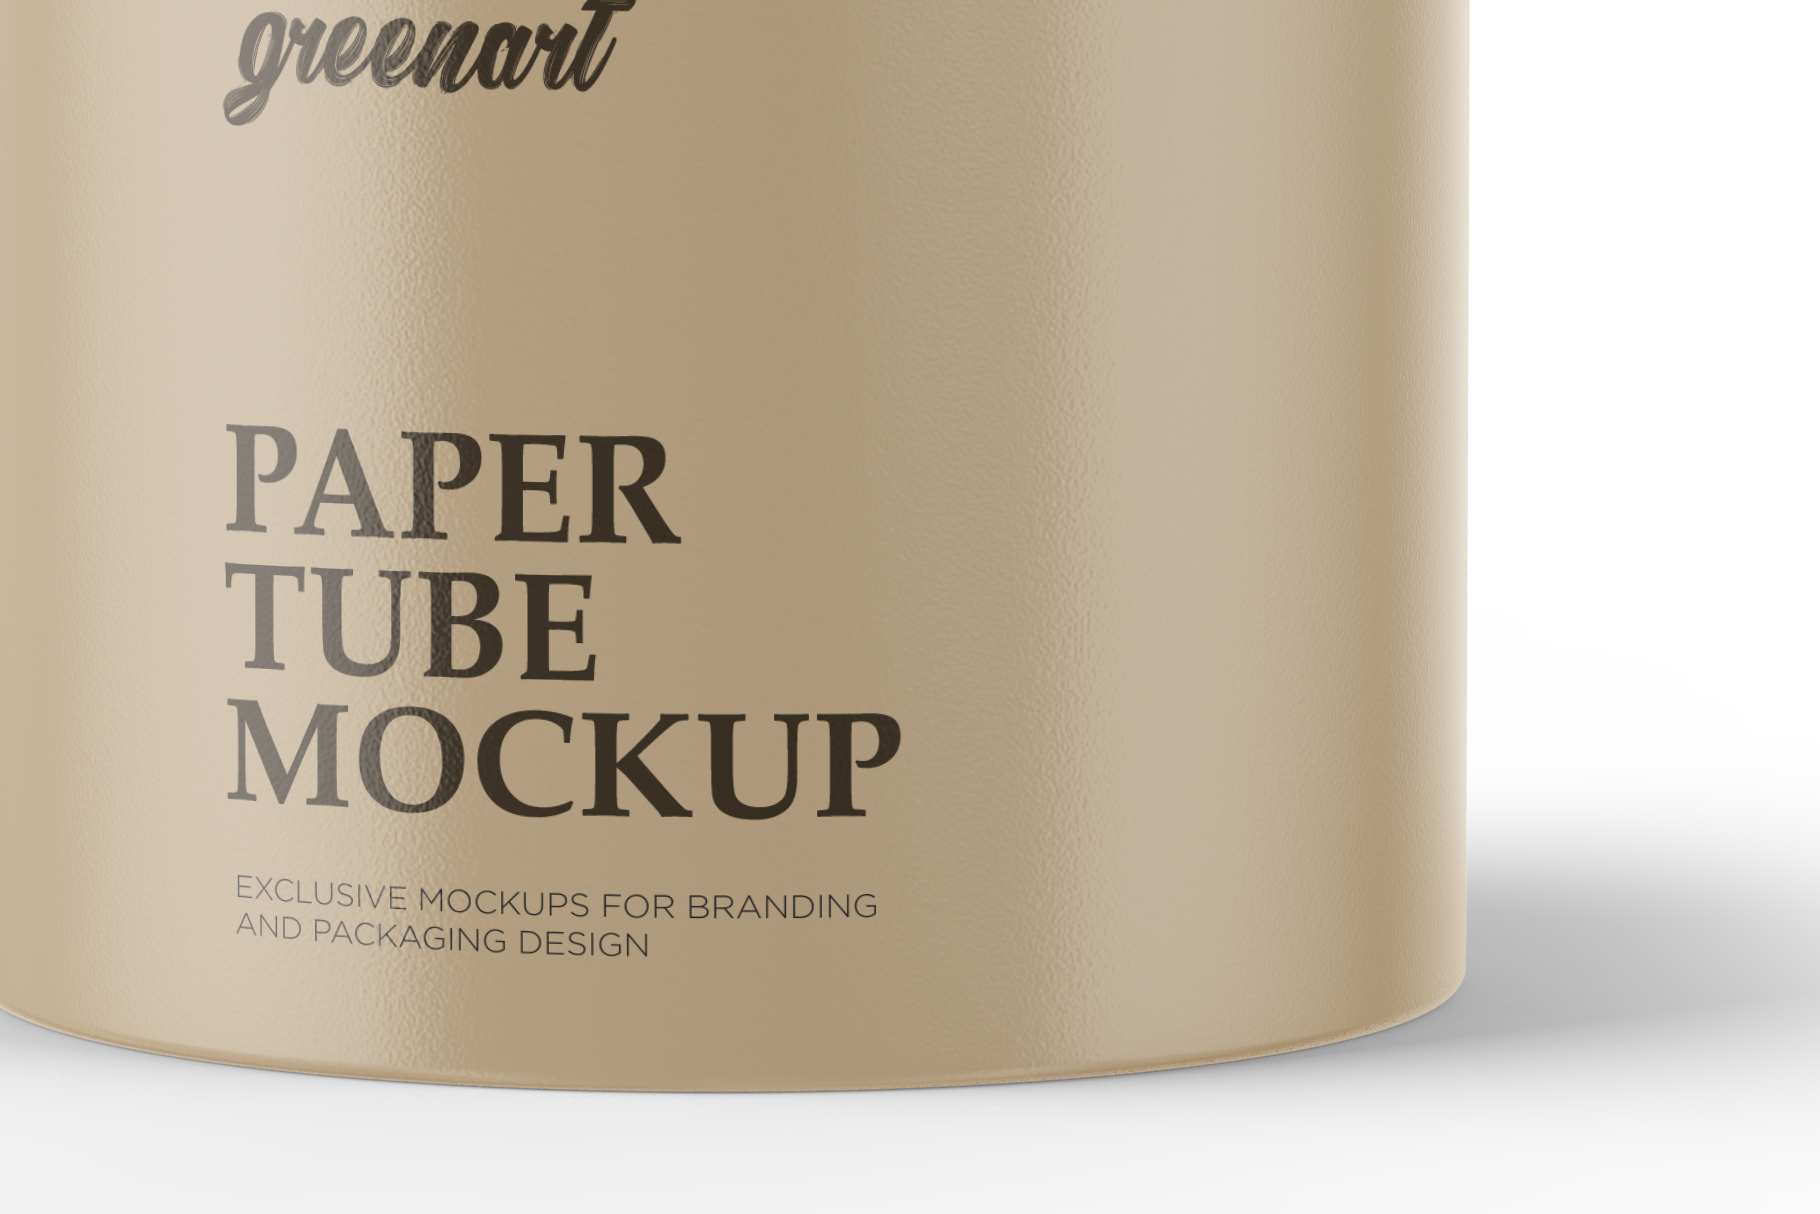 Paper Tube Mockup - Front View example image 4